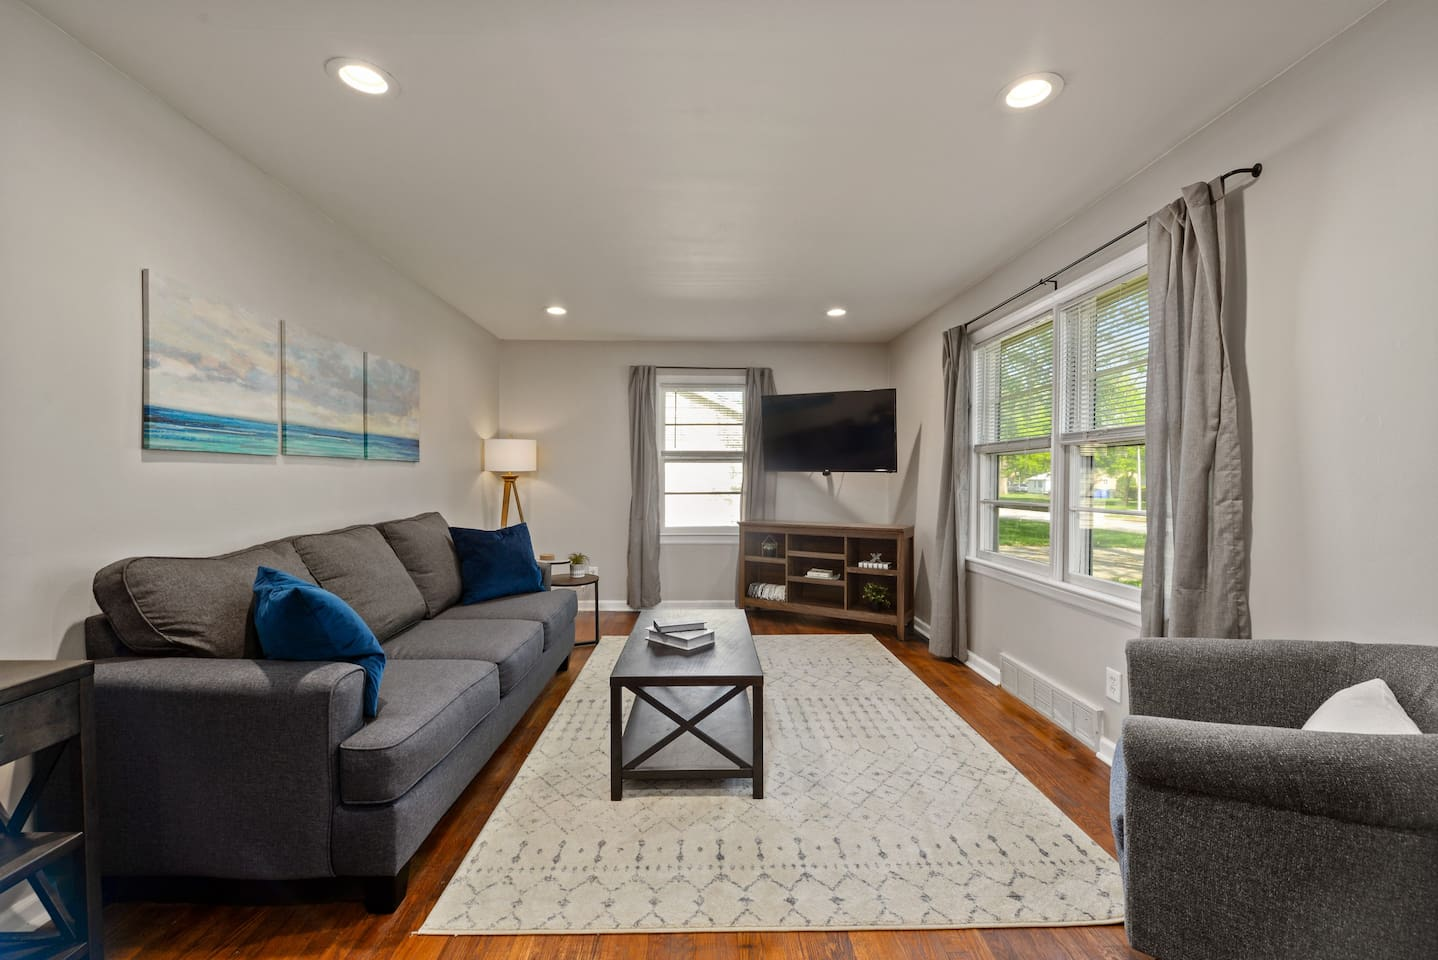 Adorable and cozy living area - wide open to the dining and kitchen